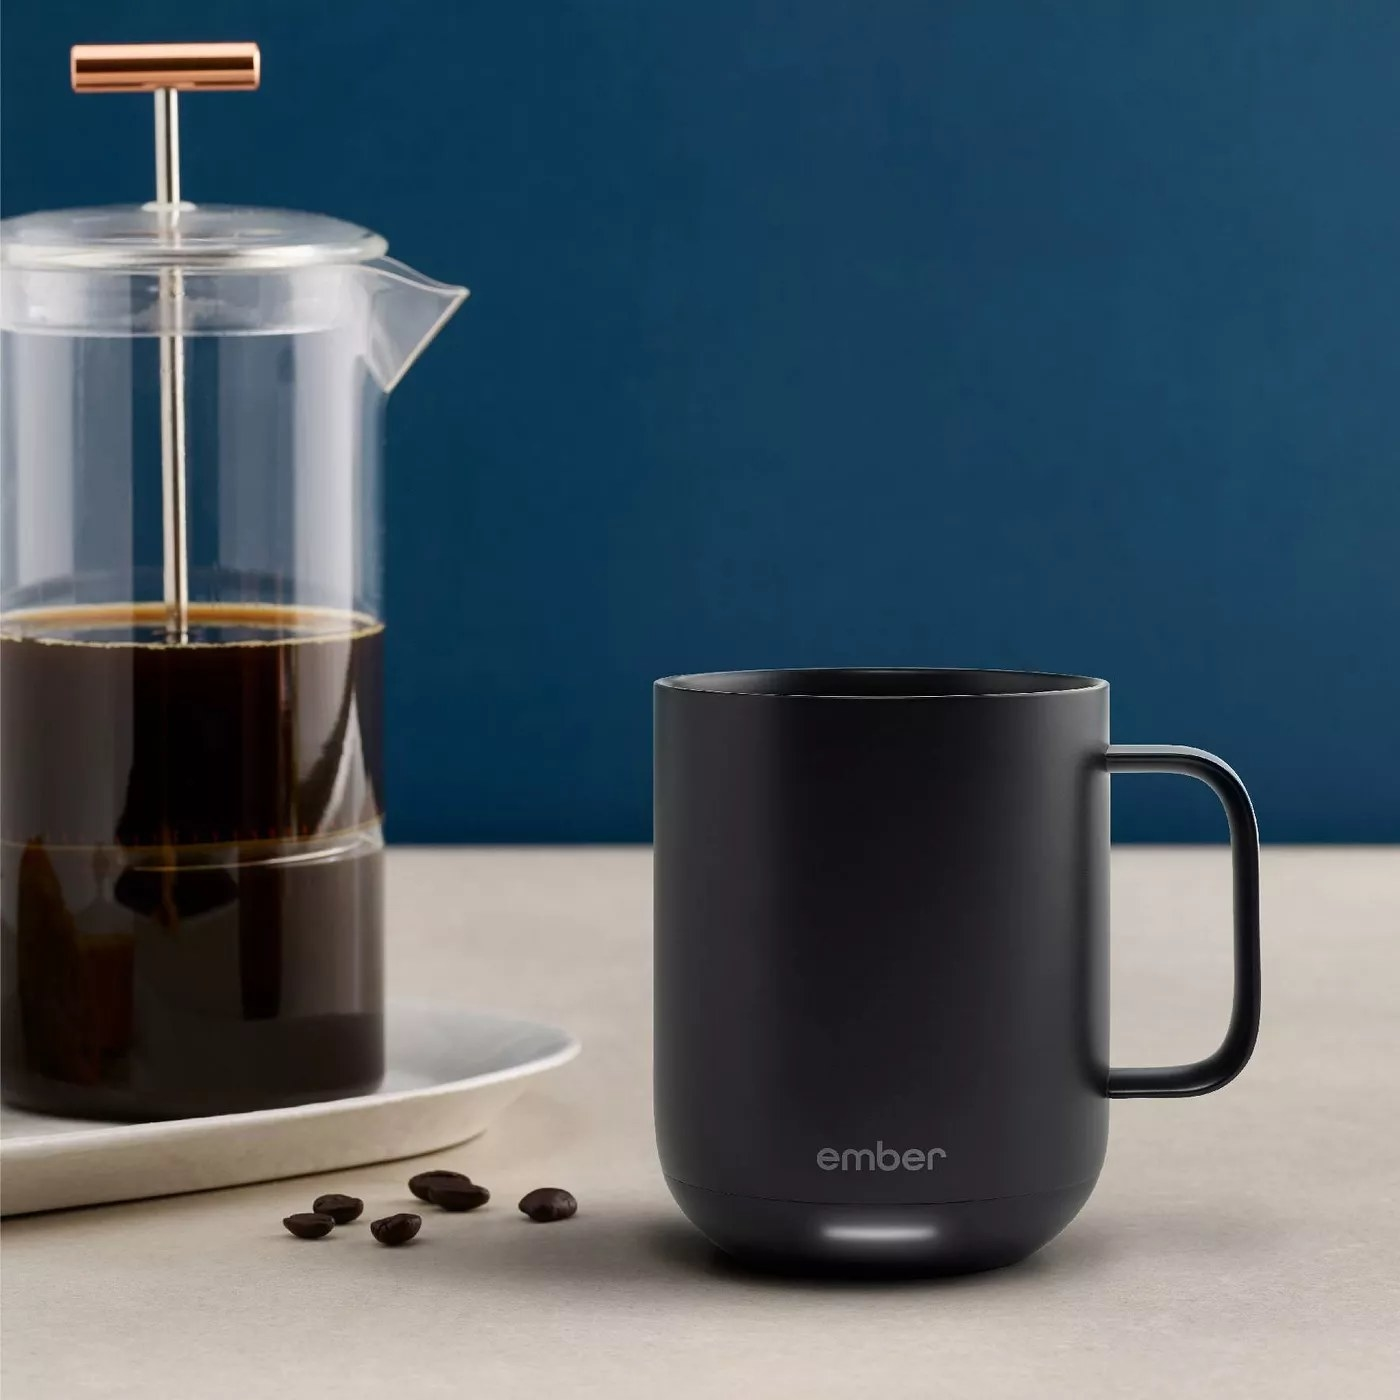 The mug with a sensor on the bottom next to a French press filled with coffee in a kitchen